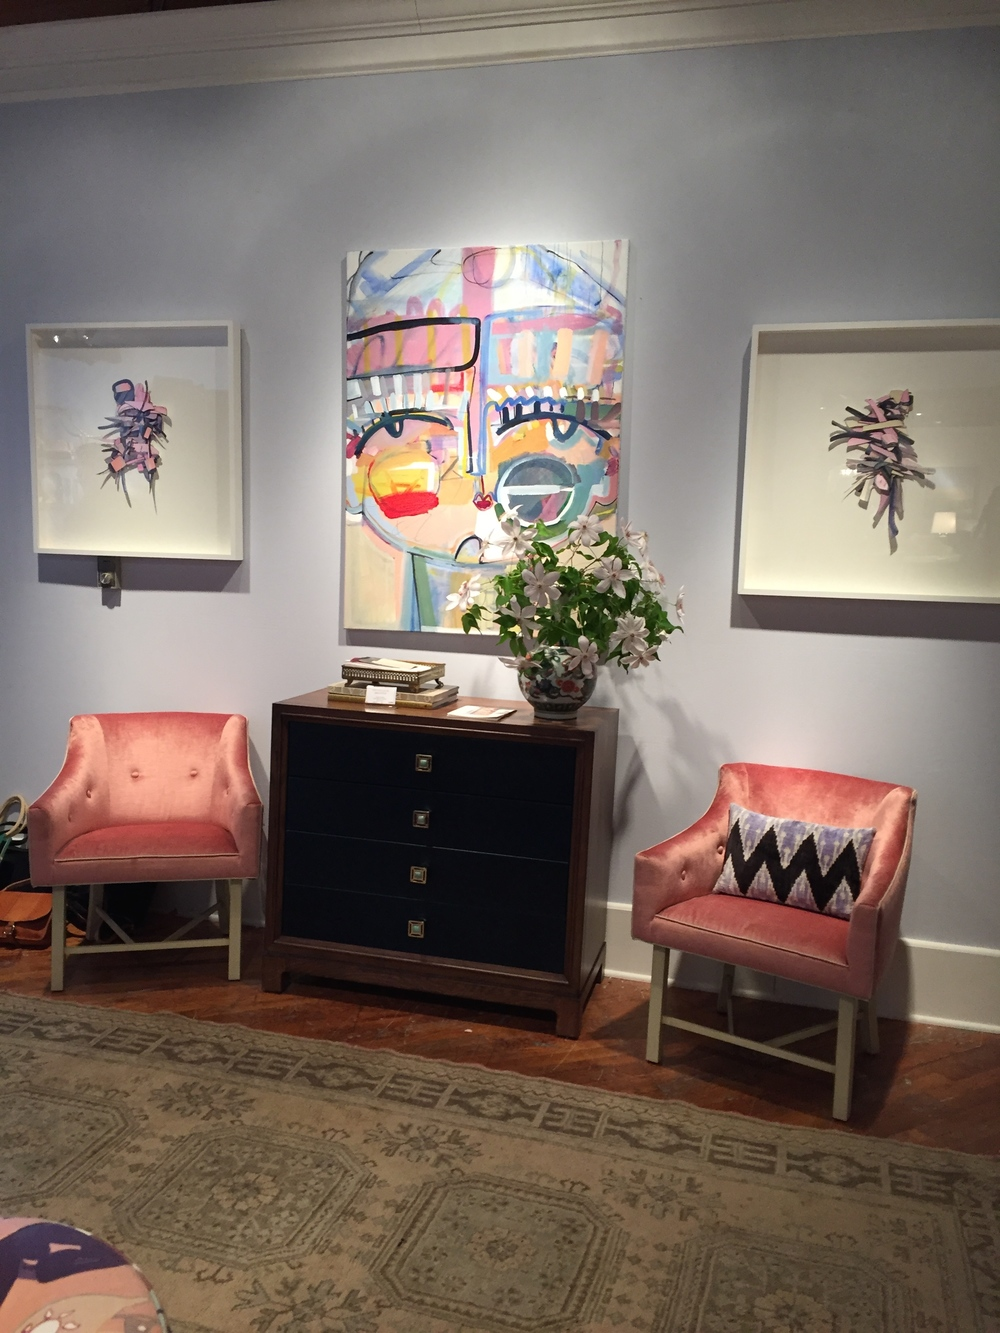 A Wood Base Tufted Upholstered Seat And Curved Arm In The McGraw Chair Make It Most Feminine Piece Collection Colorful Contemporary Art From